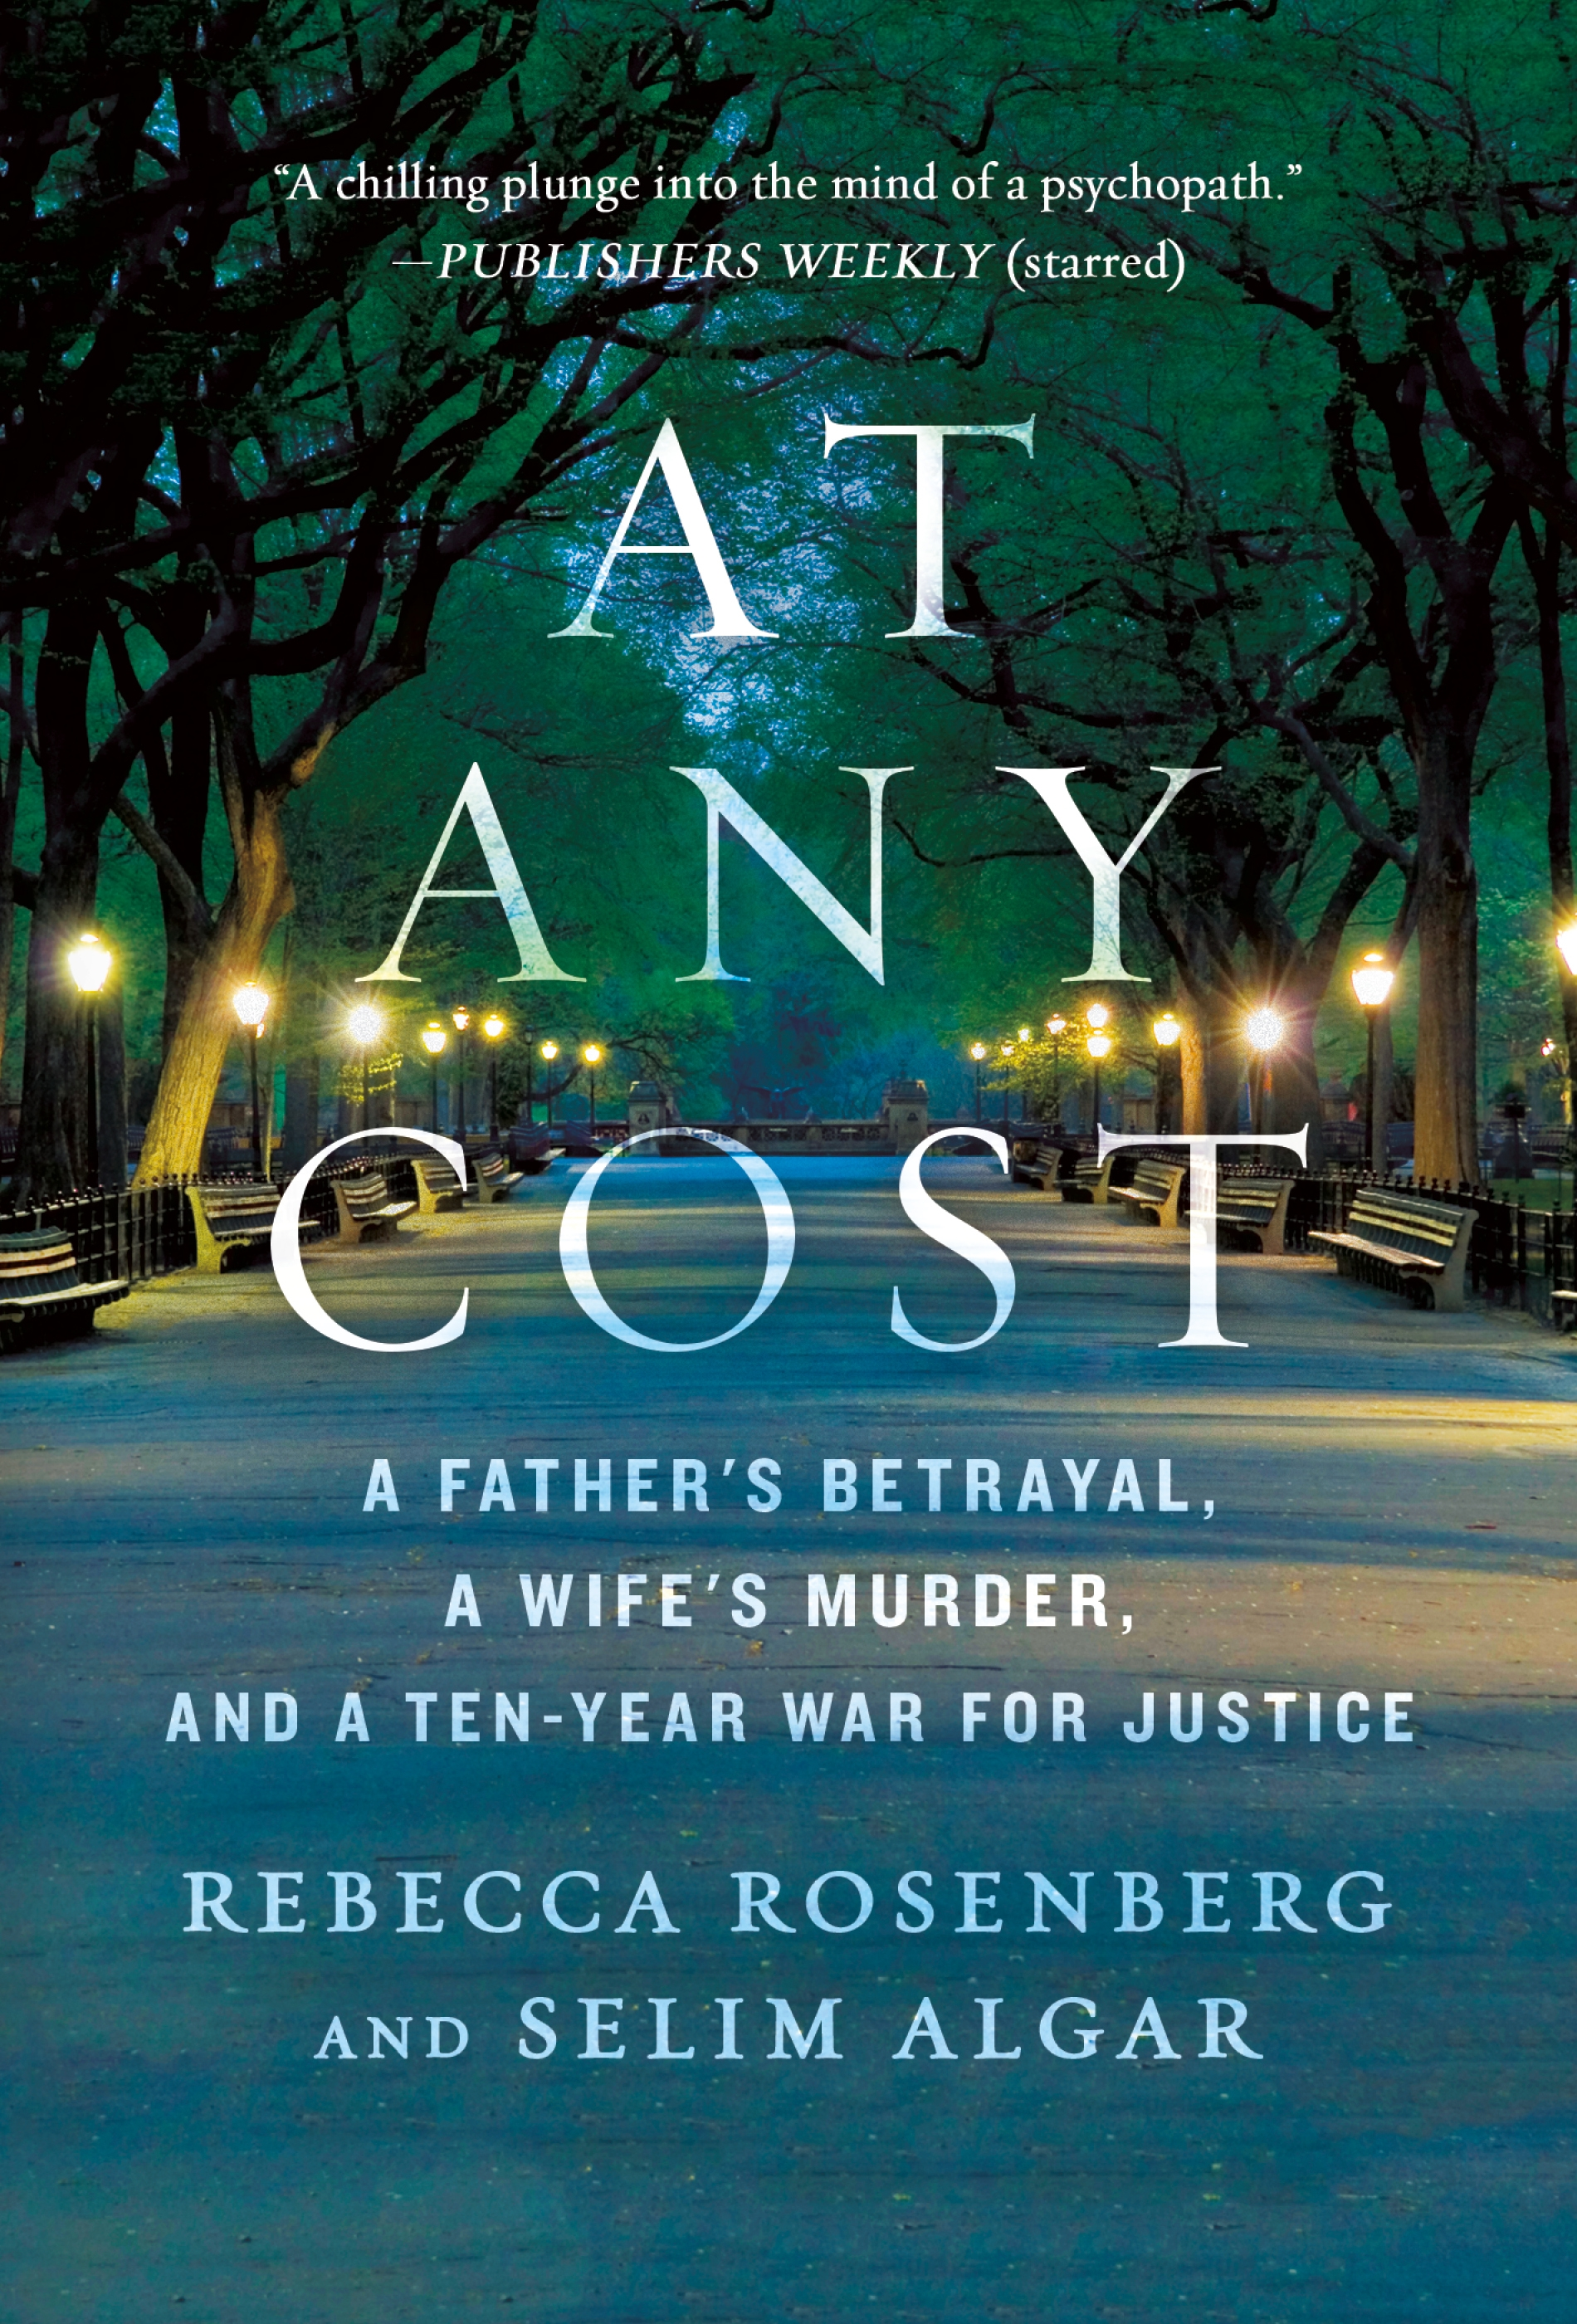 At Any Cost A Father's Betrayal, a Wife's Murder, and a Ten-Year War for Justice